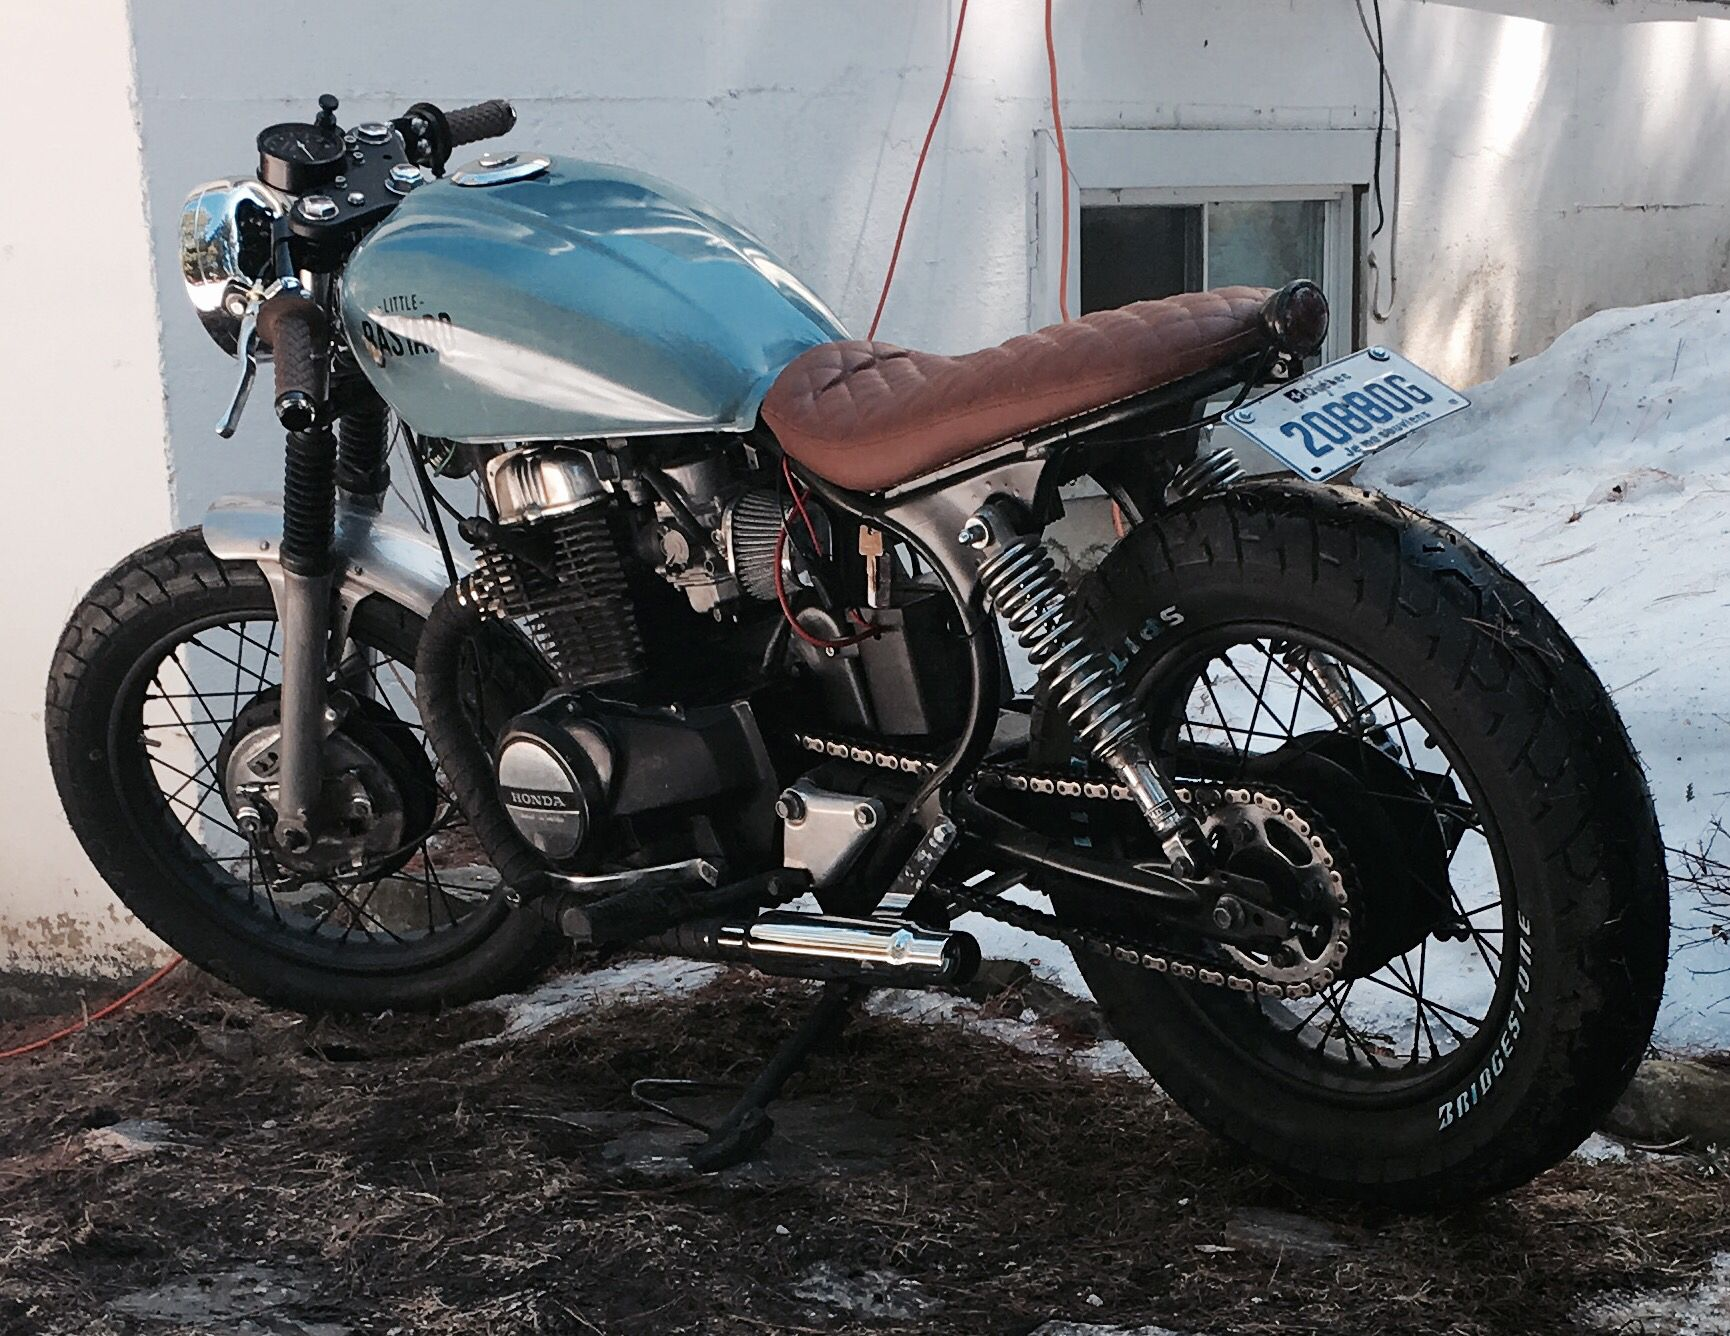 Moto Honda Cm450 1984 Caferacer Bratstyle Vintage Equiped With Biltwell Handle And Motogadget S Electronic Custom Cafe Racer Cafe Racer Honda Cafe Racer Bikes [ 1336 x 1730 Pixel ]